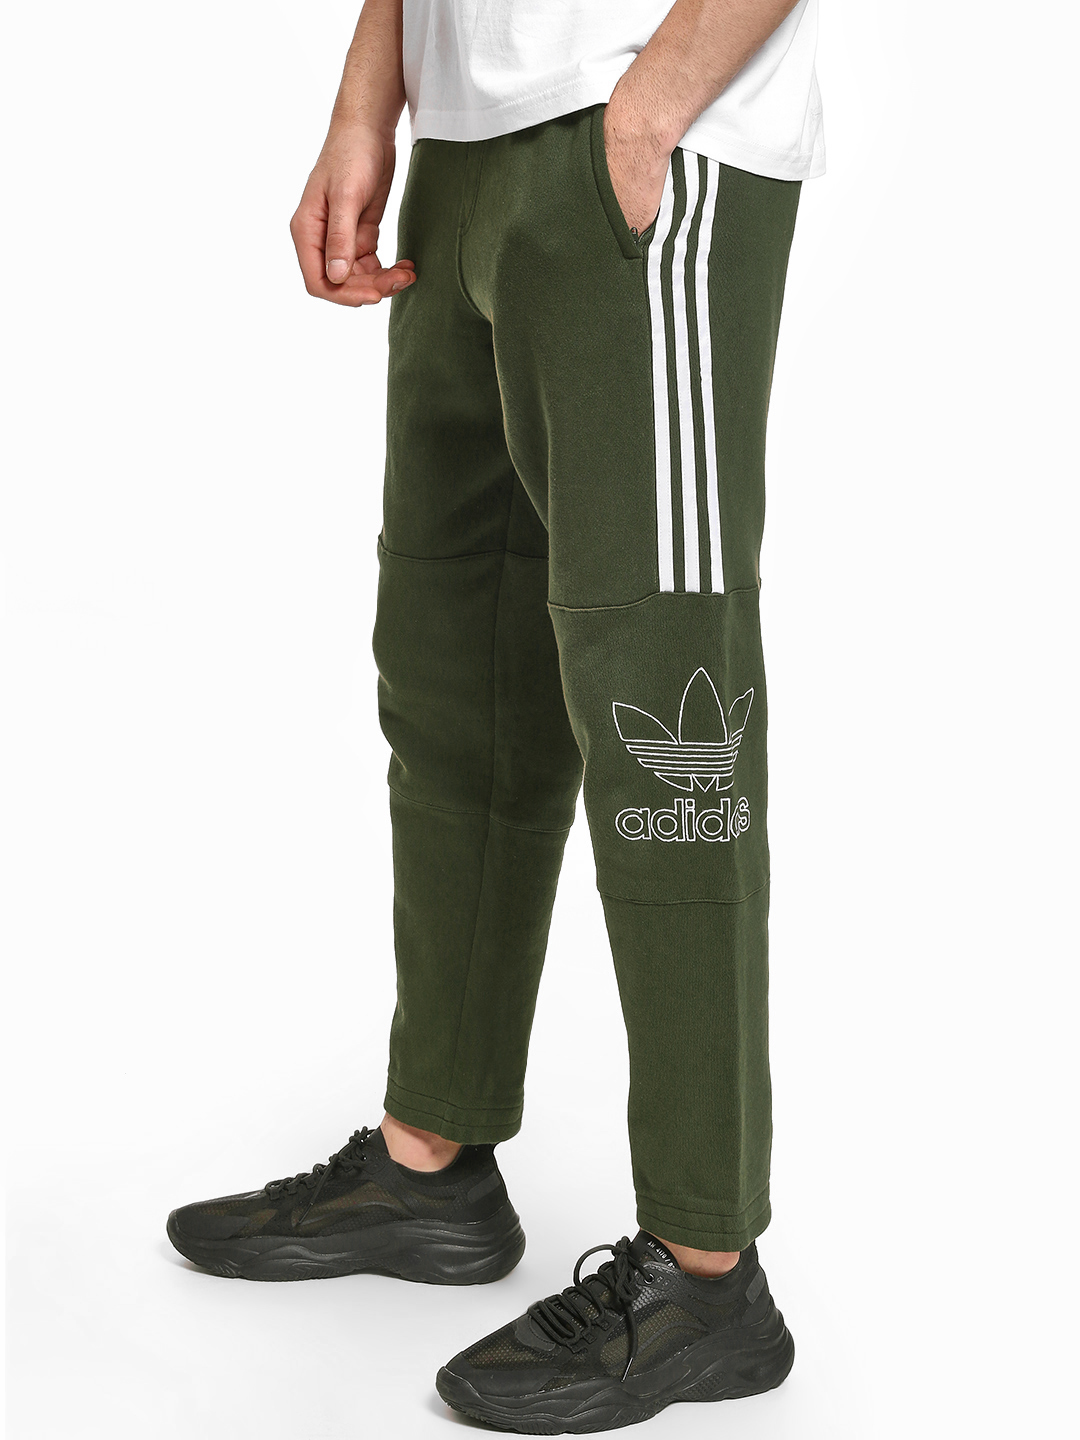 Adidas Originals Green Outline Pants 1